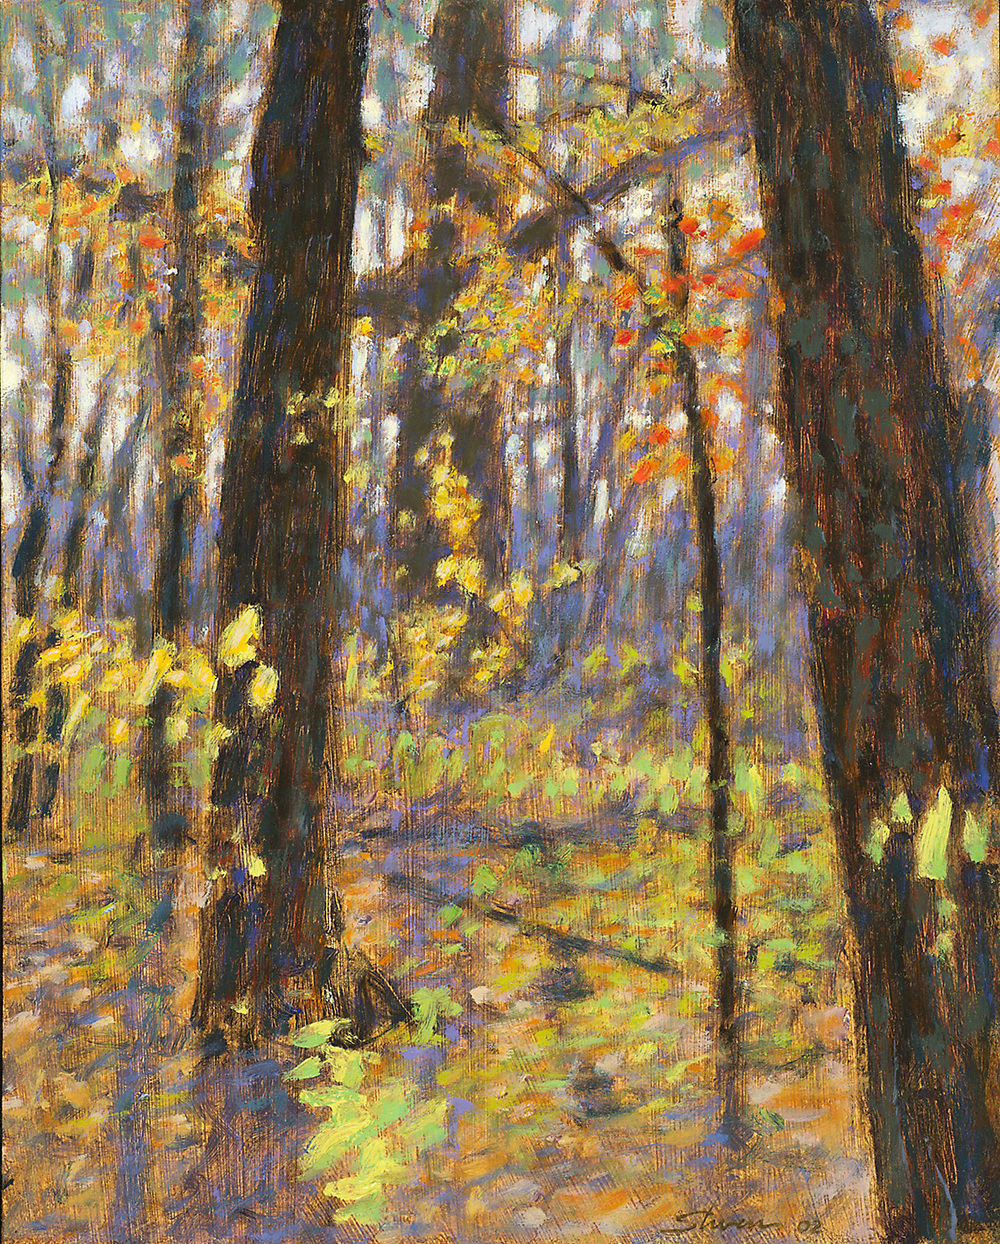 Woods In Spring | oil on panel | 15 x 12"